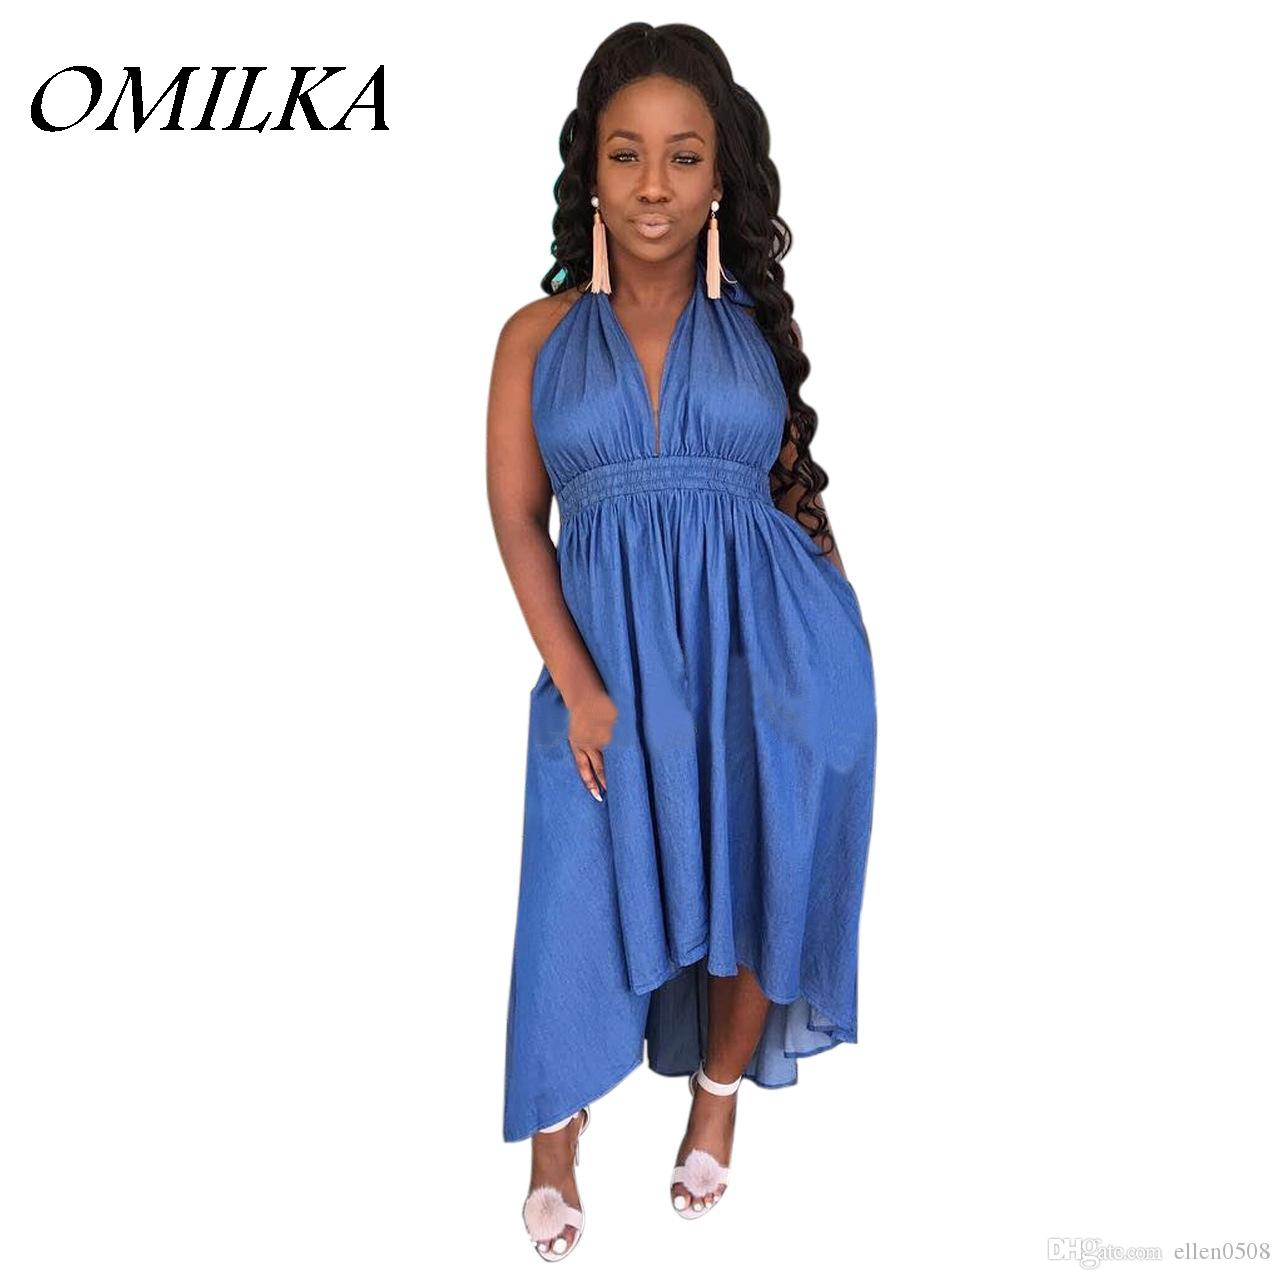 a7cdba257b OMILKA 2018 Summer Women Halter Sleeveless V Neck Backless Denim Dress  Casual Loose Blue Irregular Hollow Out Jeans Long Dress Teenage Dresses For  Sale Long ...